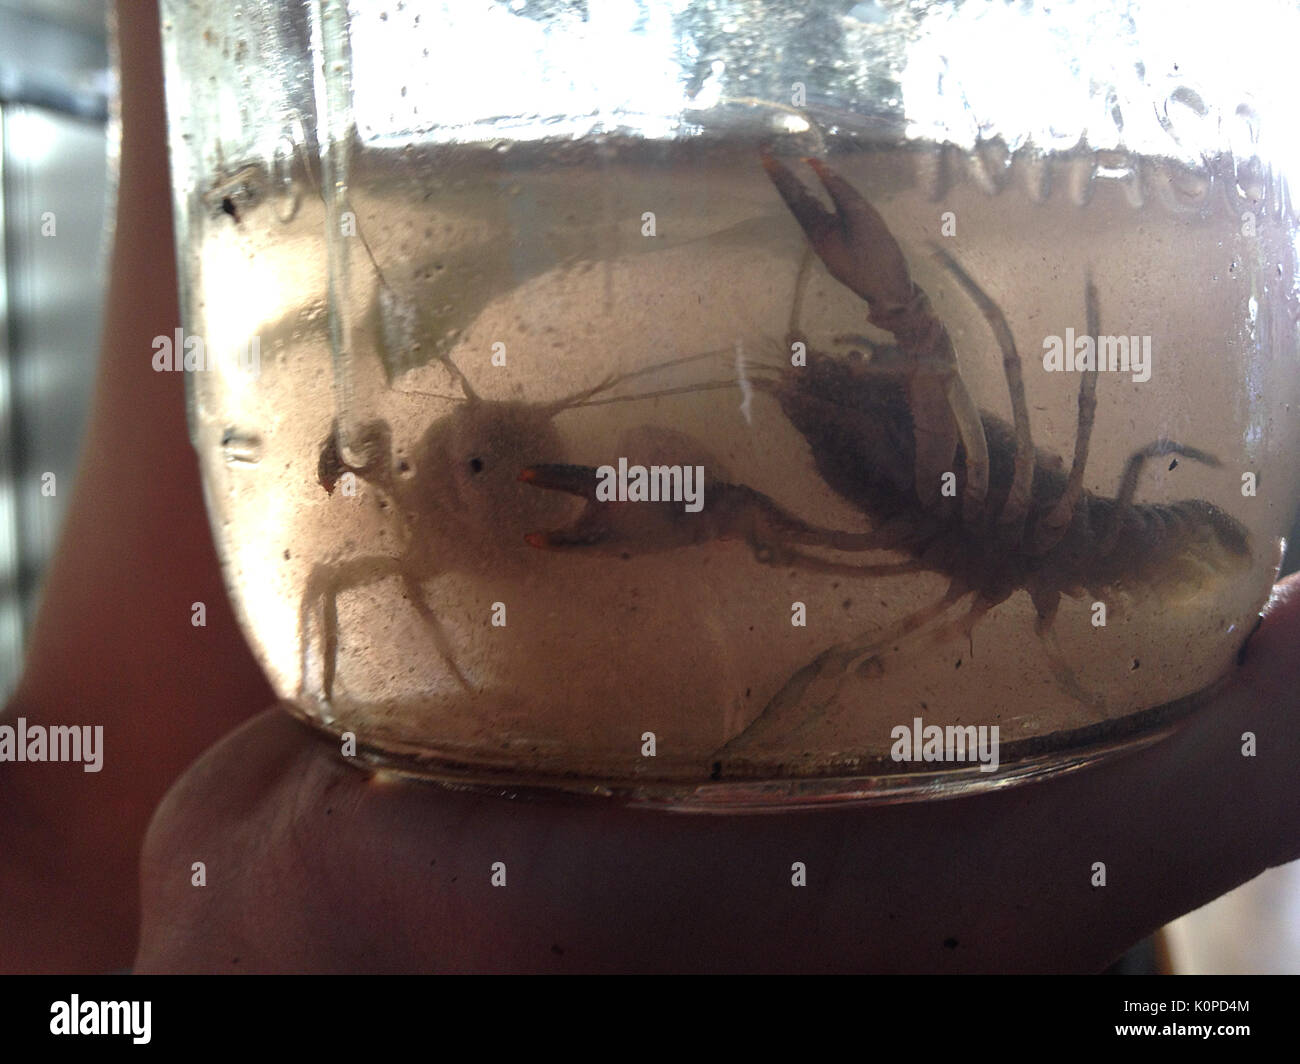 Crayfish captured  in glass jar Stock Photo